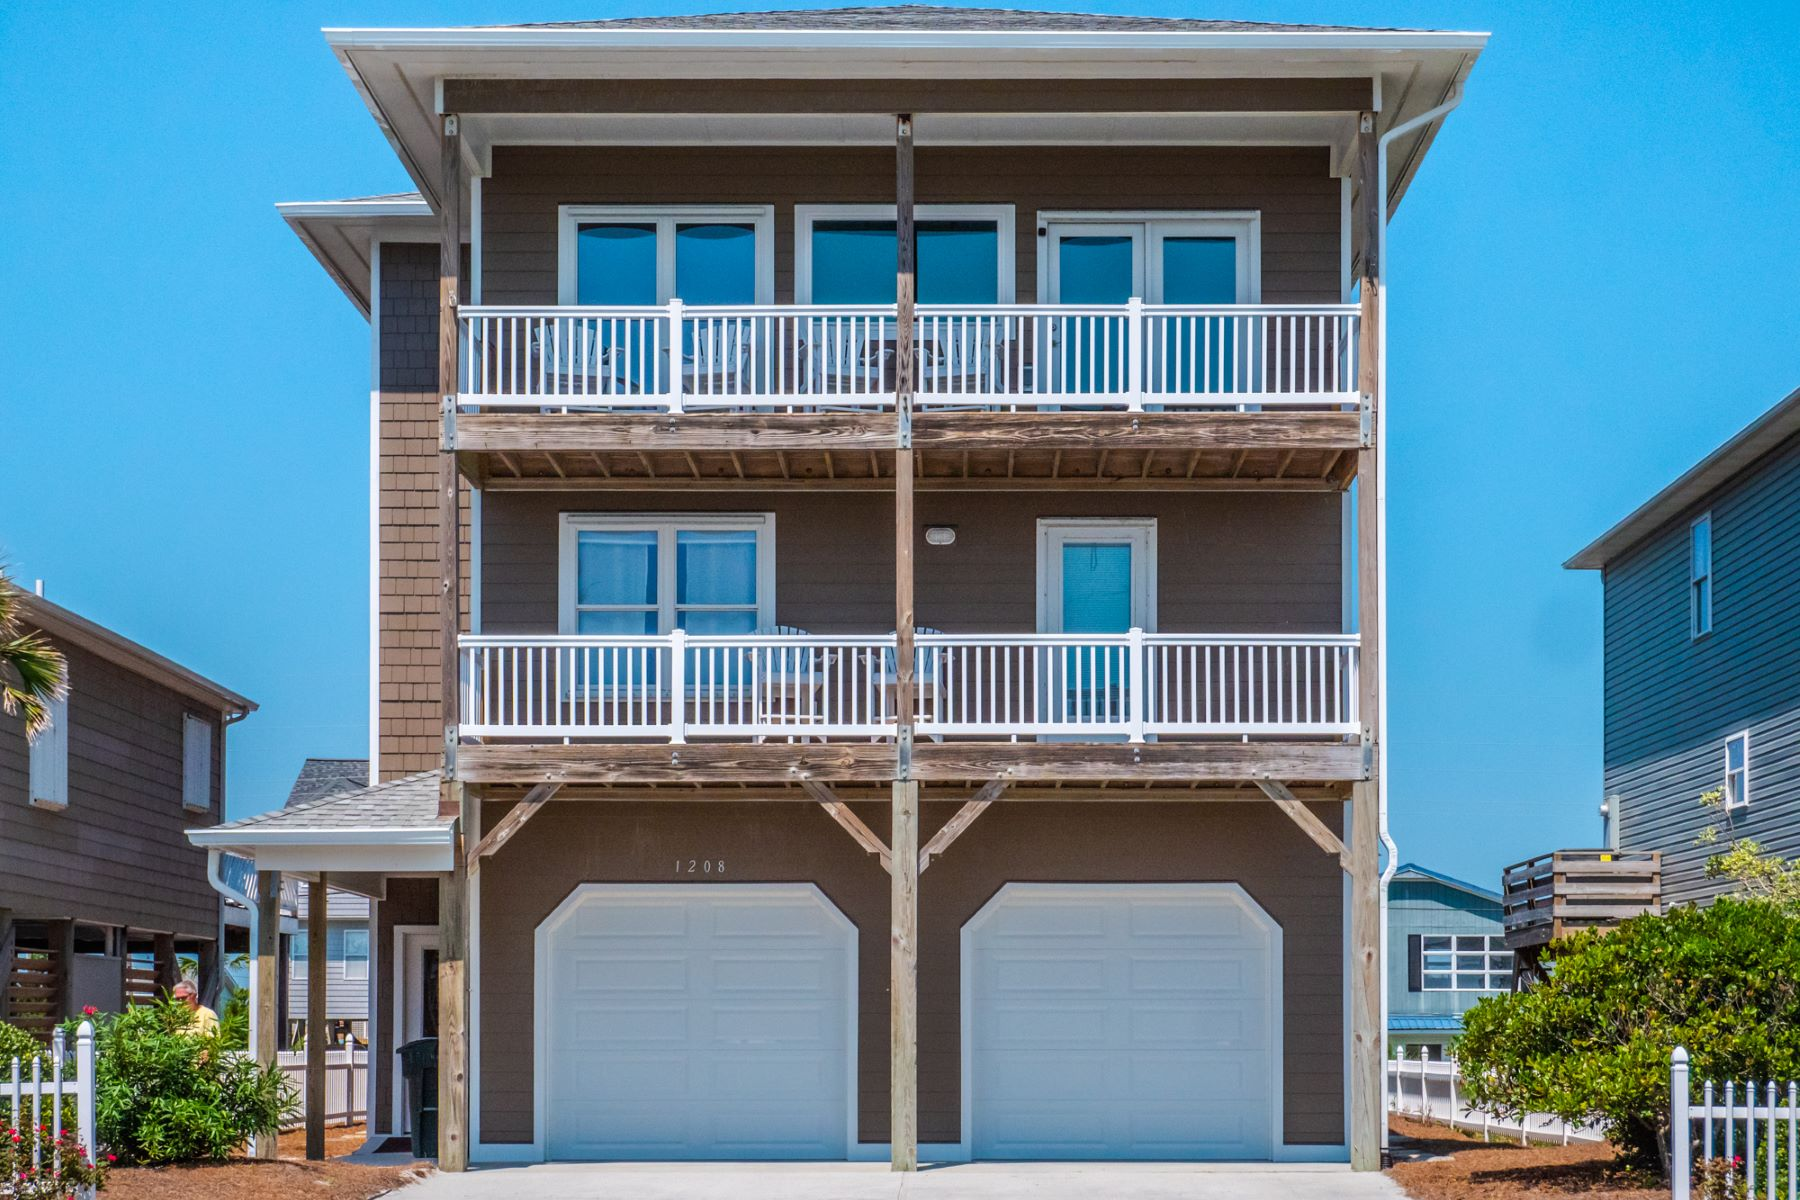 Single Family Homes for Active at Recently Renovated Beach Home! 1208 Ocean Boulevard Topsail Beach, North Carolina 28445 United States